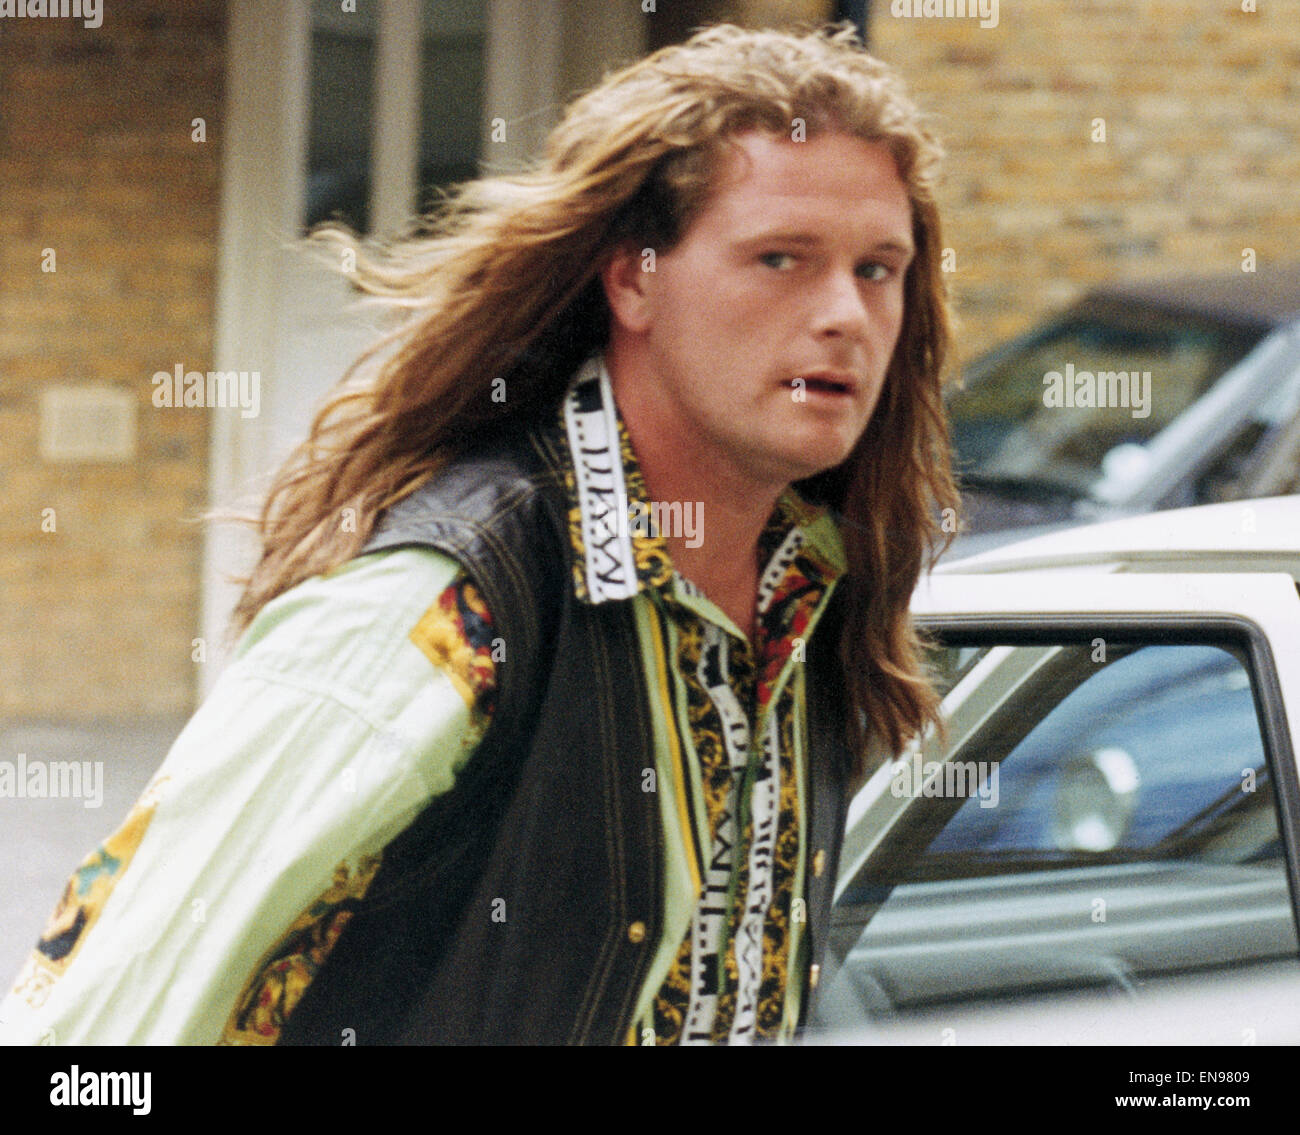 England footballer paul gascoigne walks out of a crimpers salon england footballer paul gascoigne walks out of a crimpers salon showing off his new hair extensions 8th august 1993 pmusecretfo Gallery